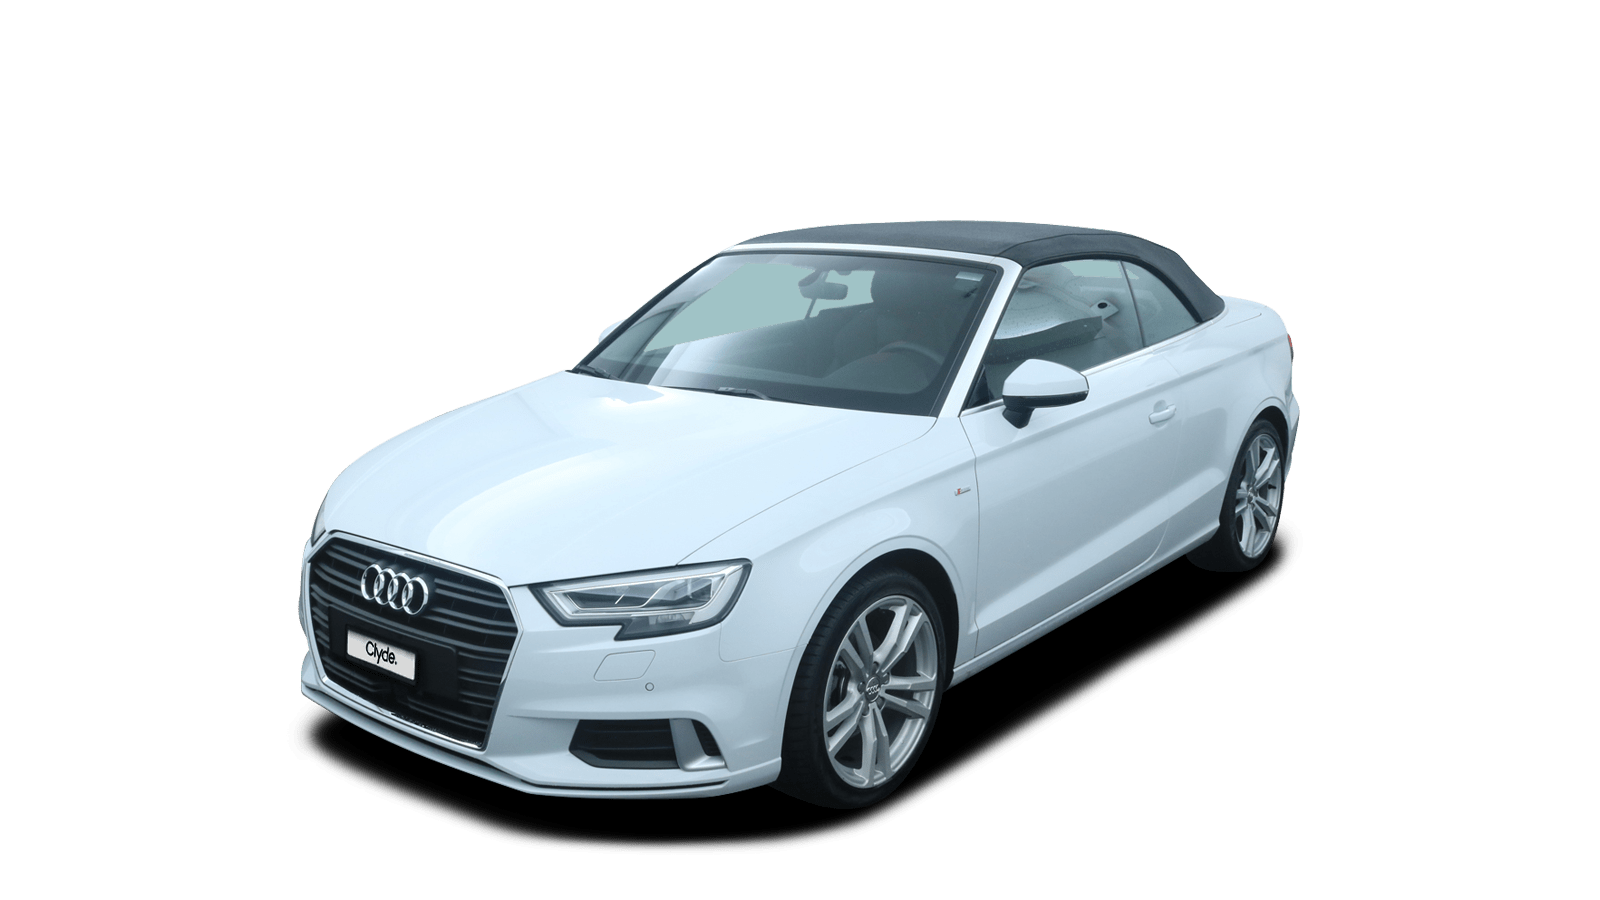 Audi A3 Cabriolet White front - Clyde car subscription